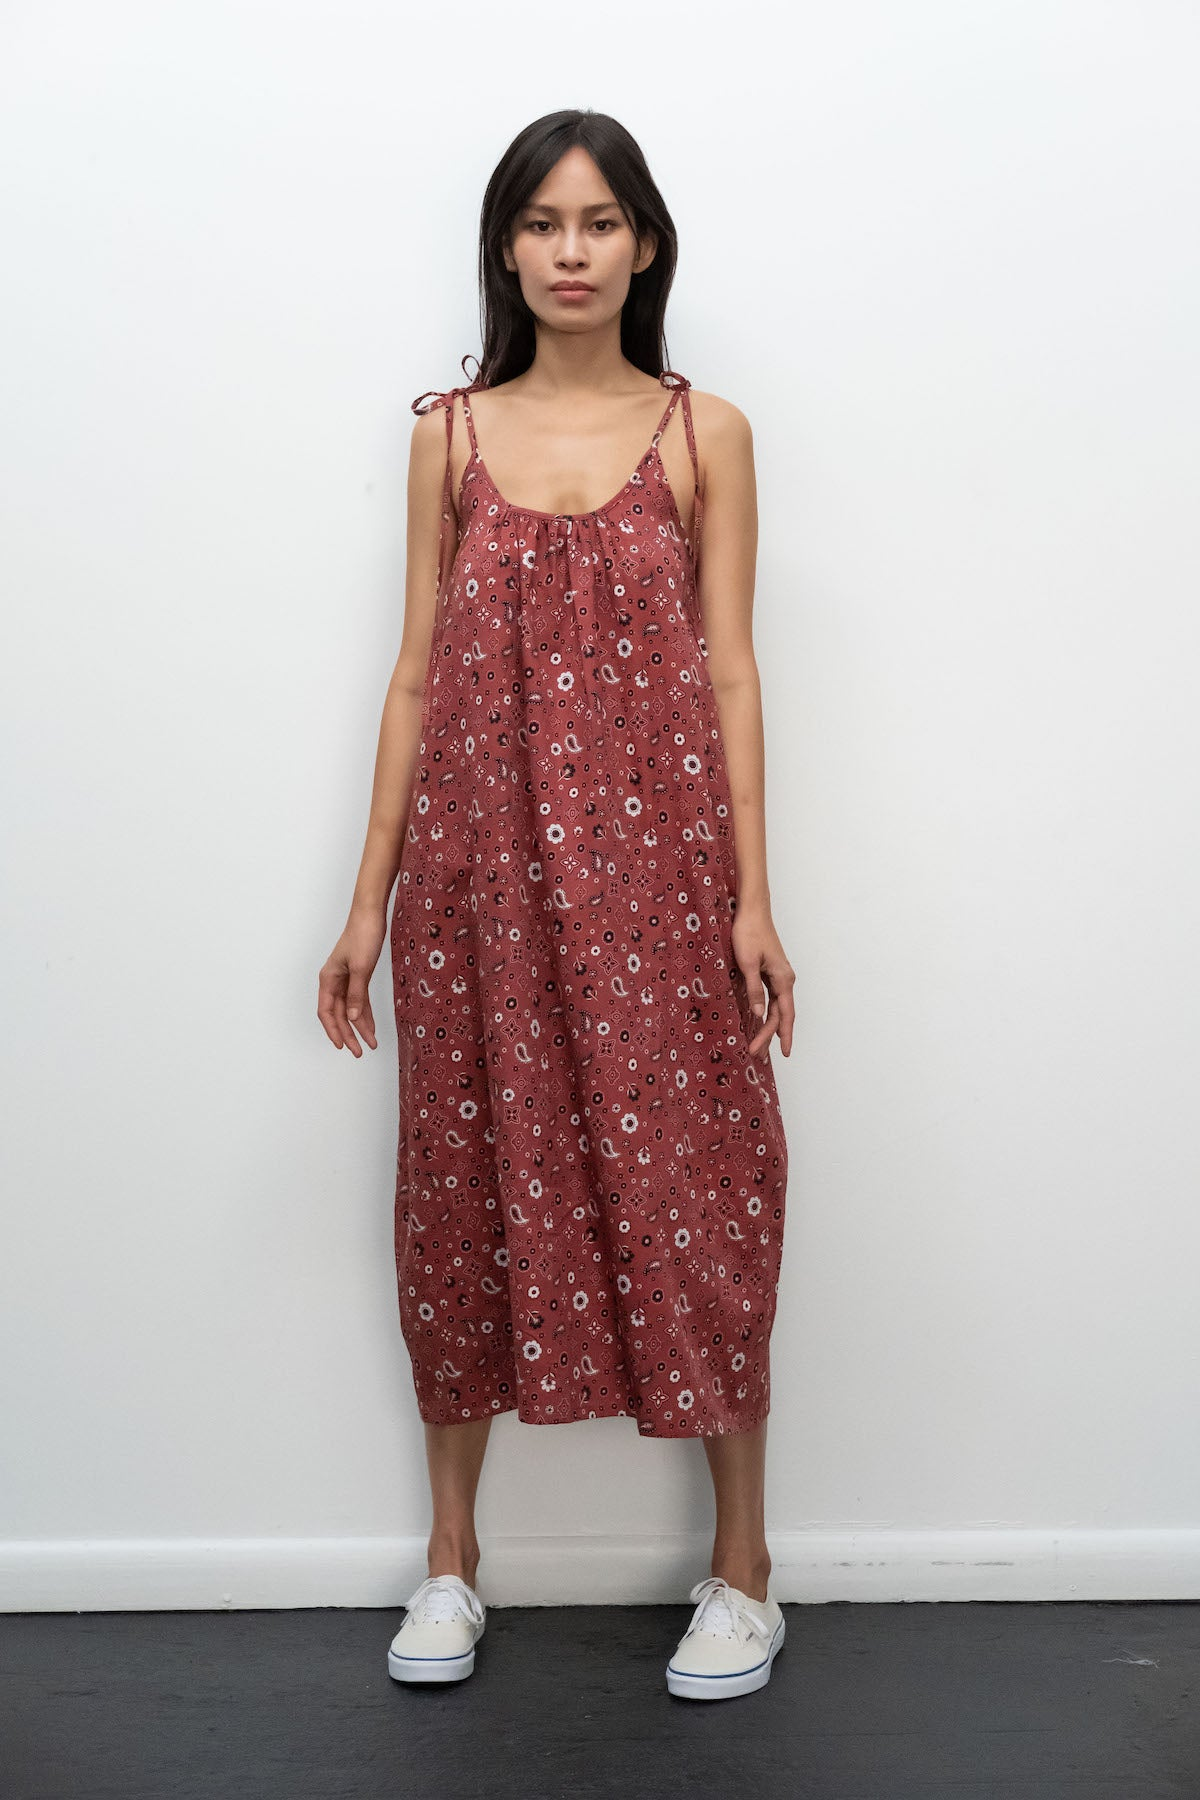 Kurt Lyle x Toit Volant Shanne Dress in Rust Bandana